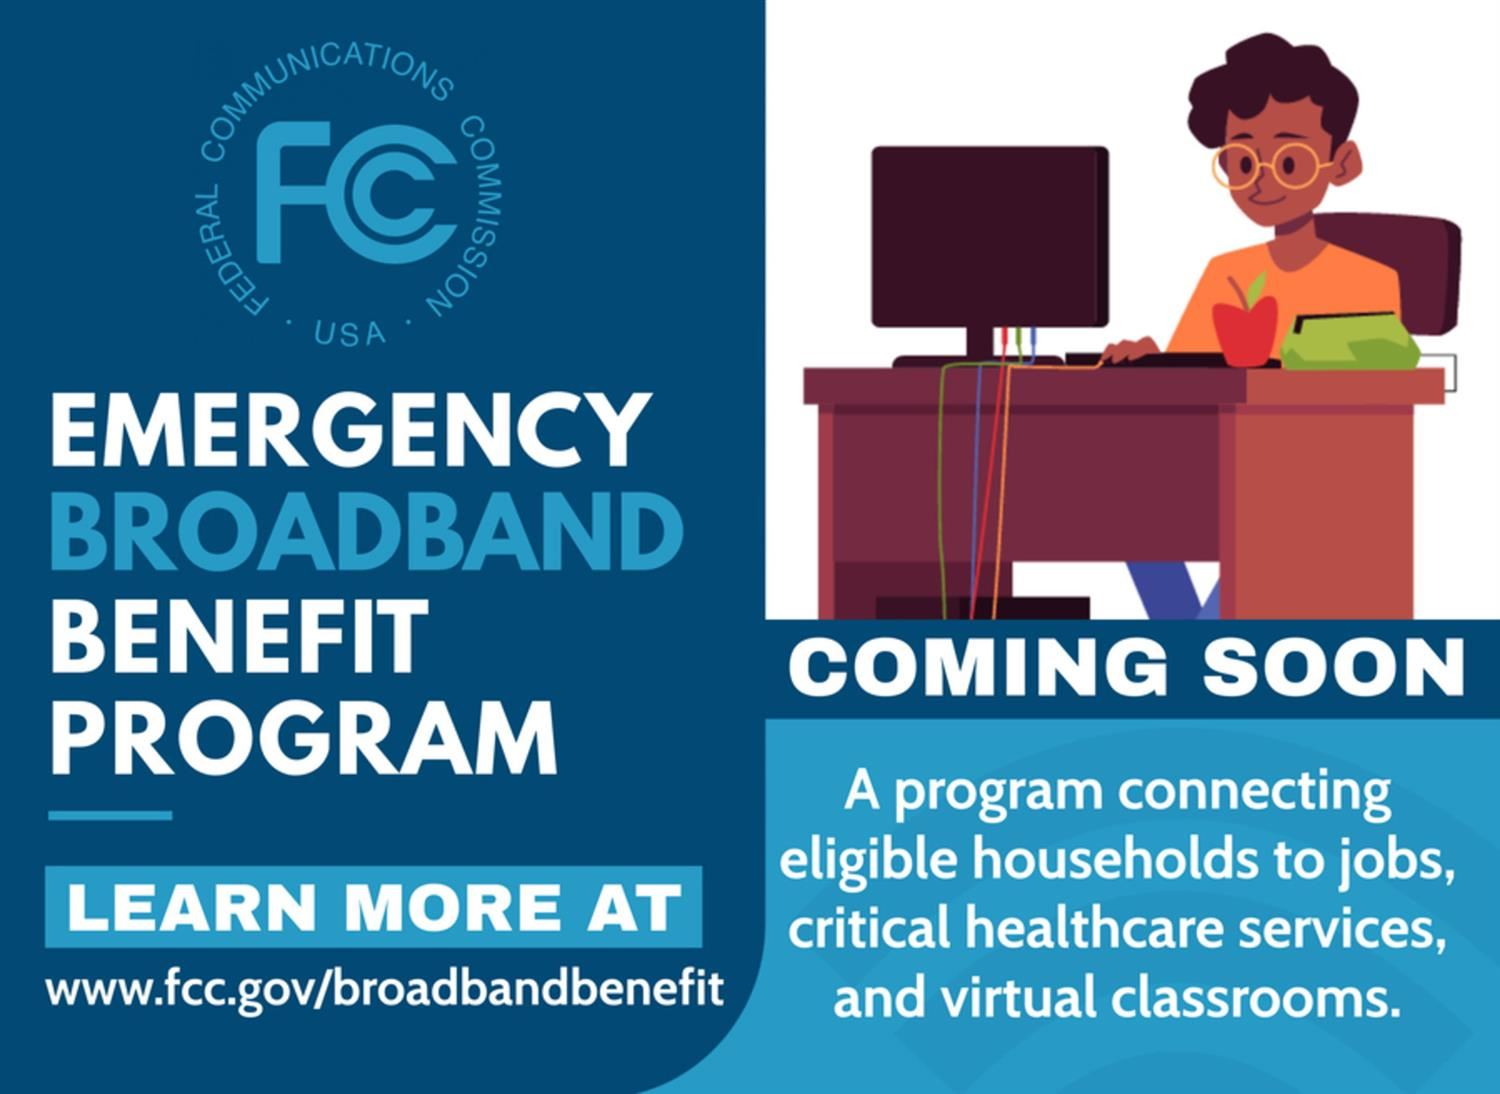 Main Preparatory FCC's Emergency Broadband Benefit Program